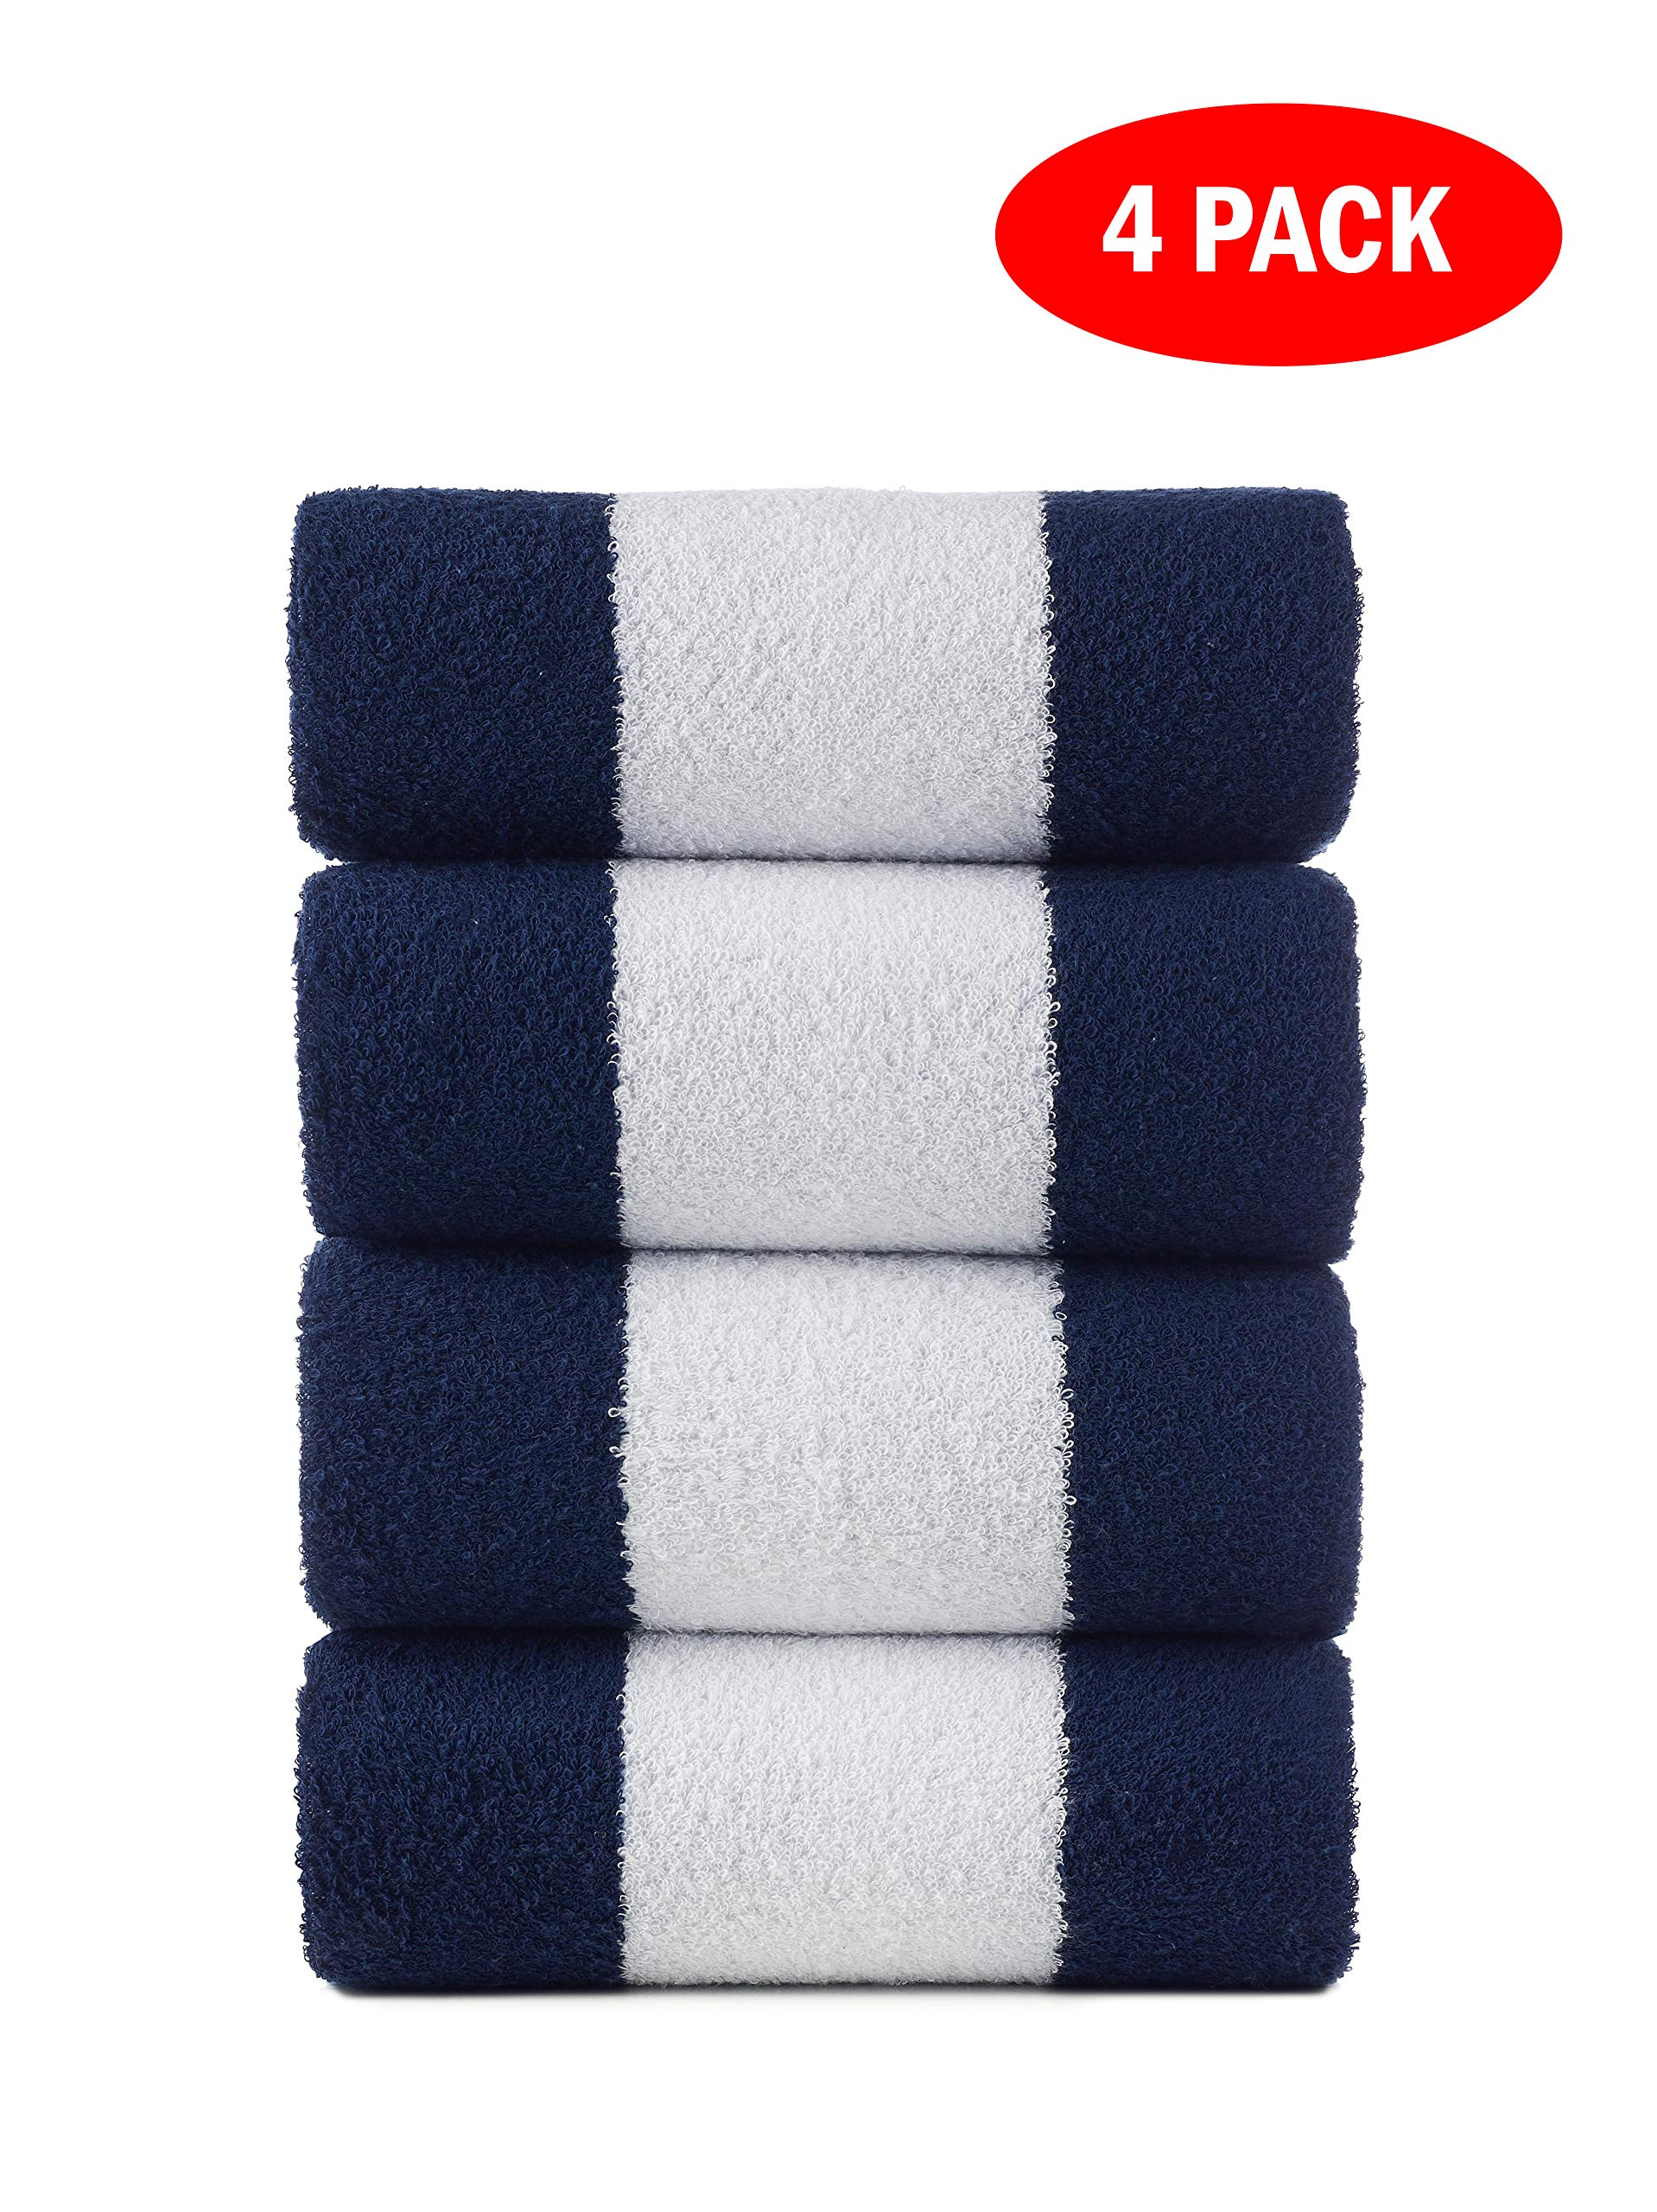 Turquoise Textile 100% Turkish Cotton 4 Pack Cabana Stripe Eco-Friendly Large Beach Pool Towel (30 x 60) - Ultra Soft, Plush, Absorbent and Quick Dry, Navy